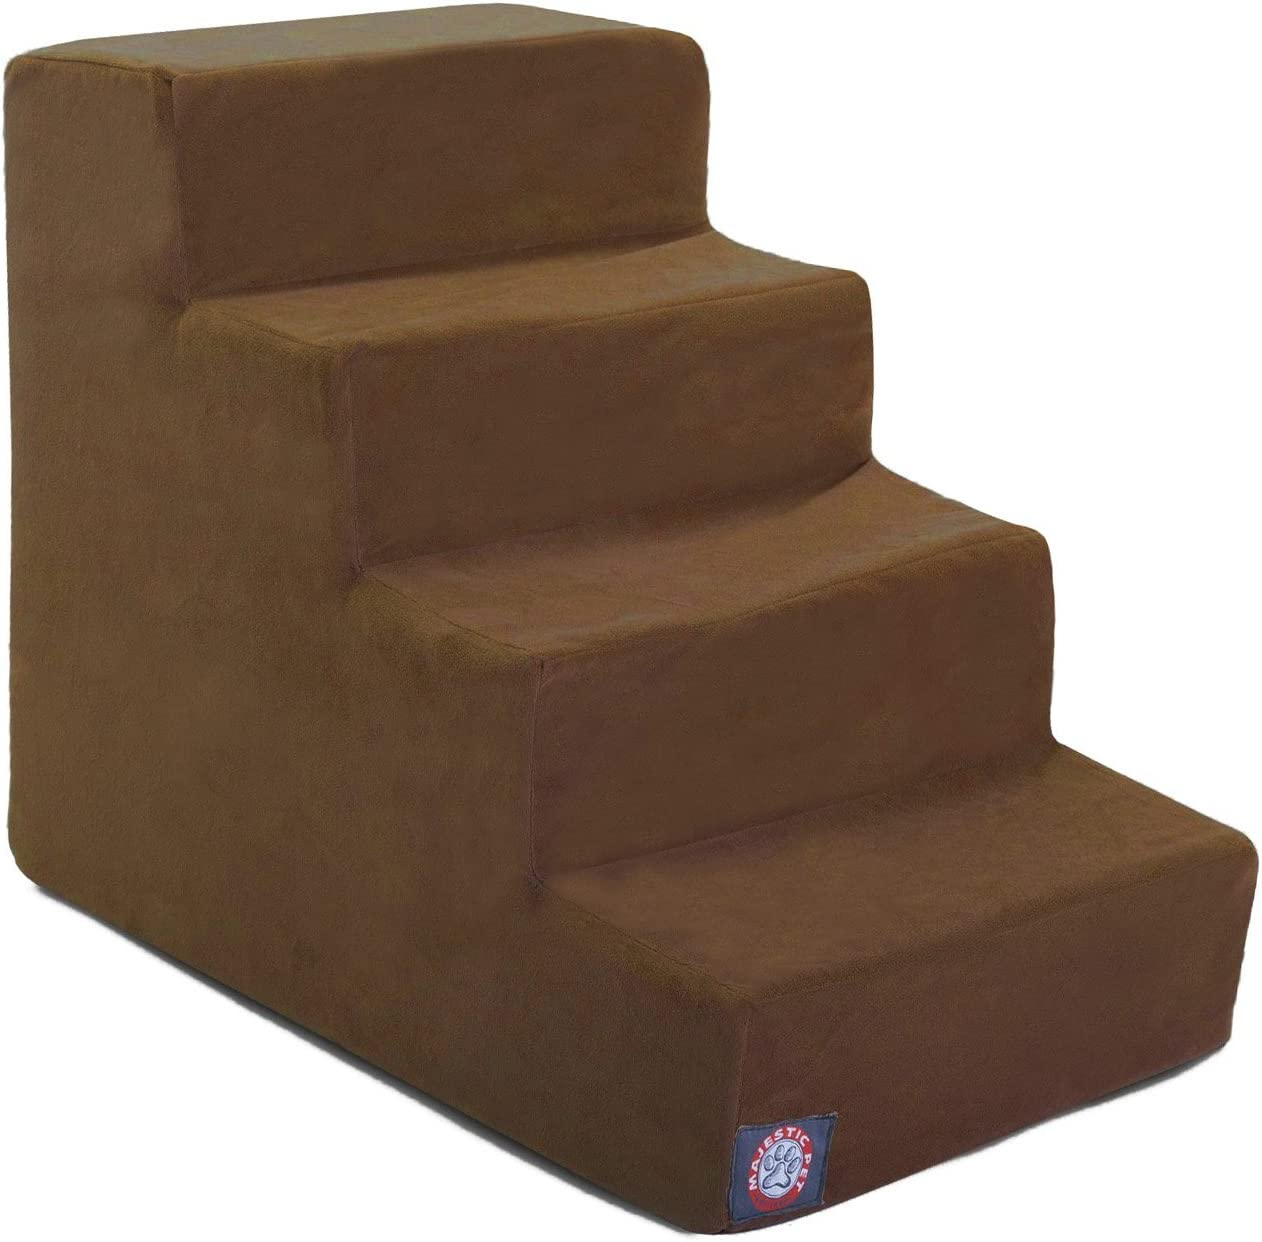 3 Step Black Velvet Suede Pet Stairs by Majestic Pet Products 71kqGe0161L